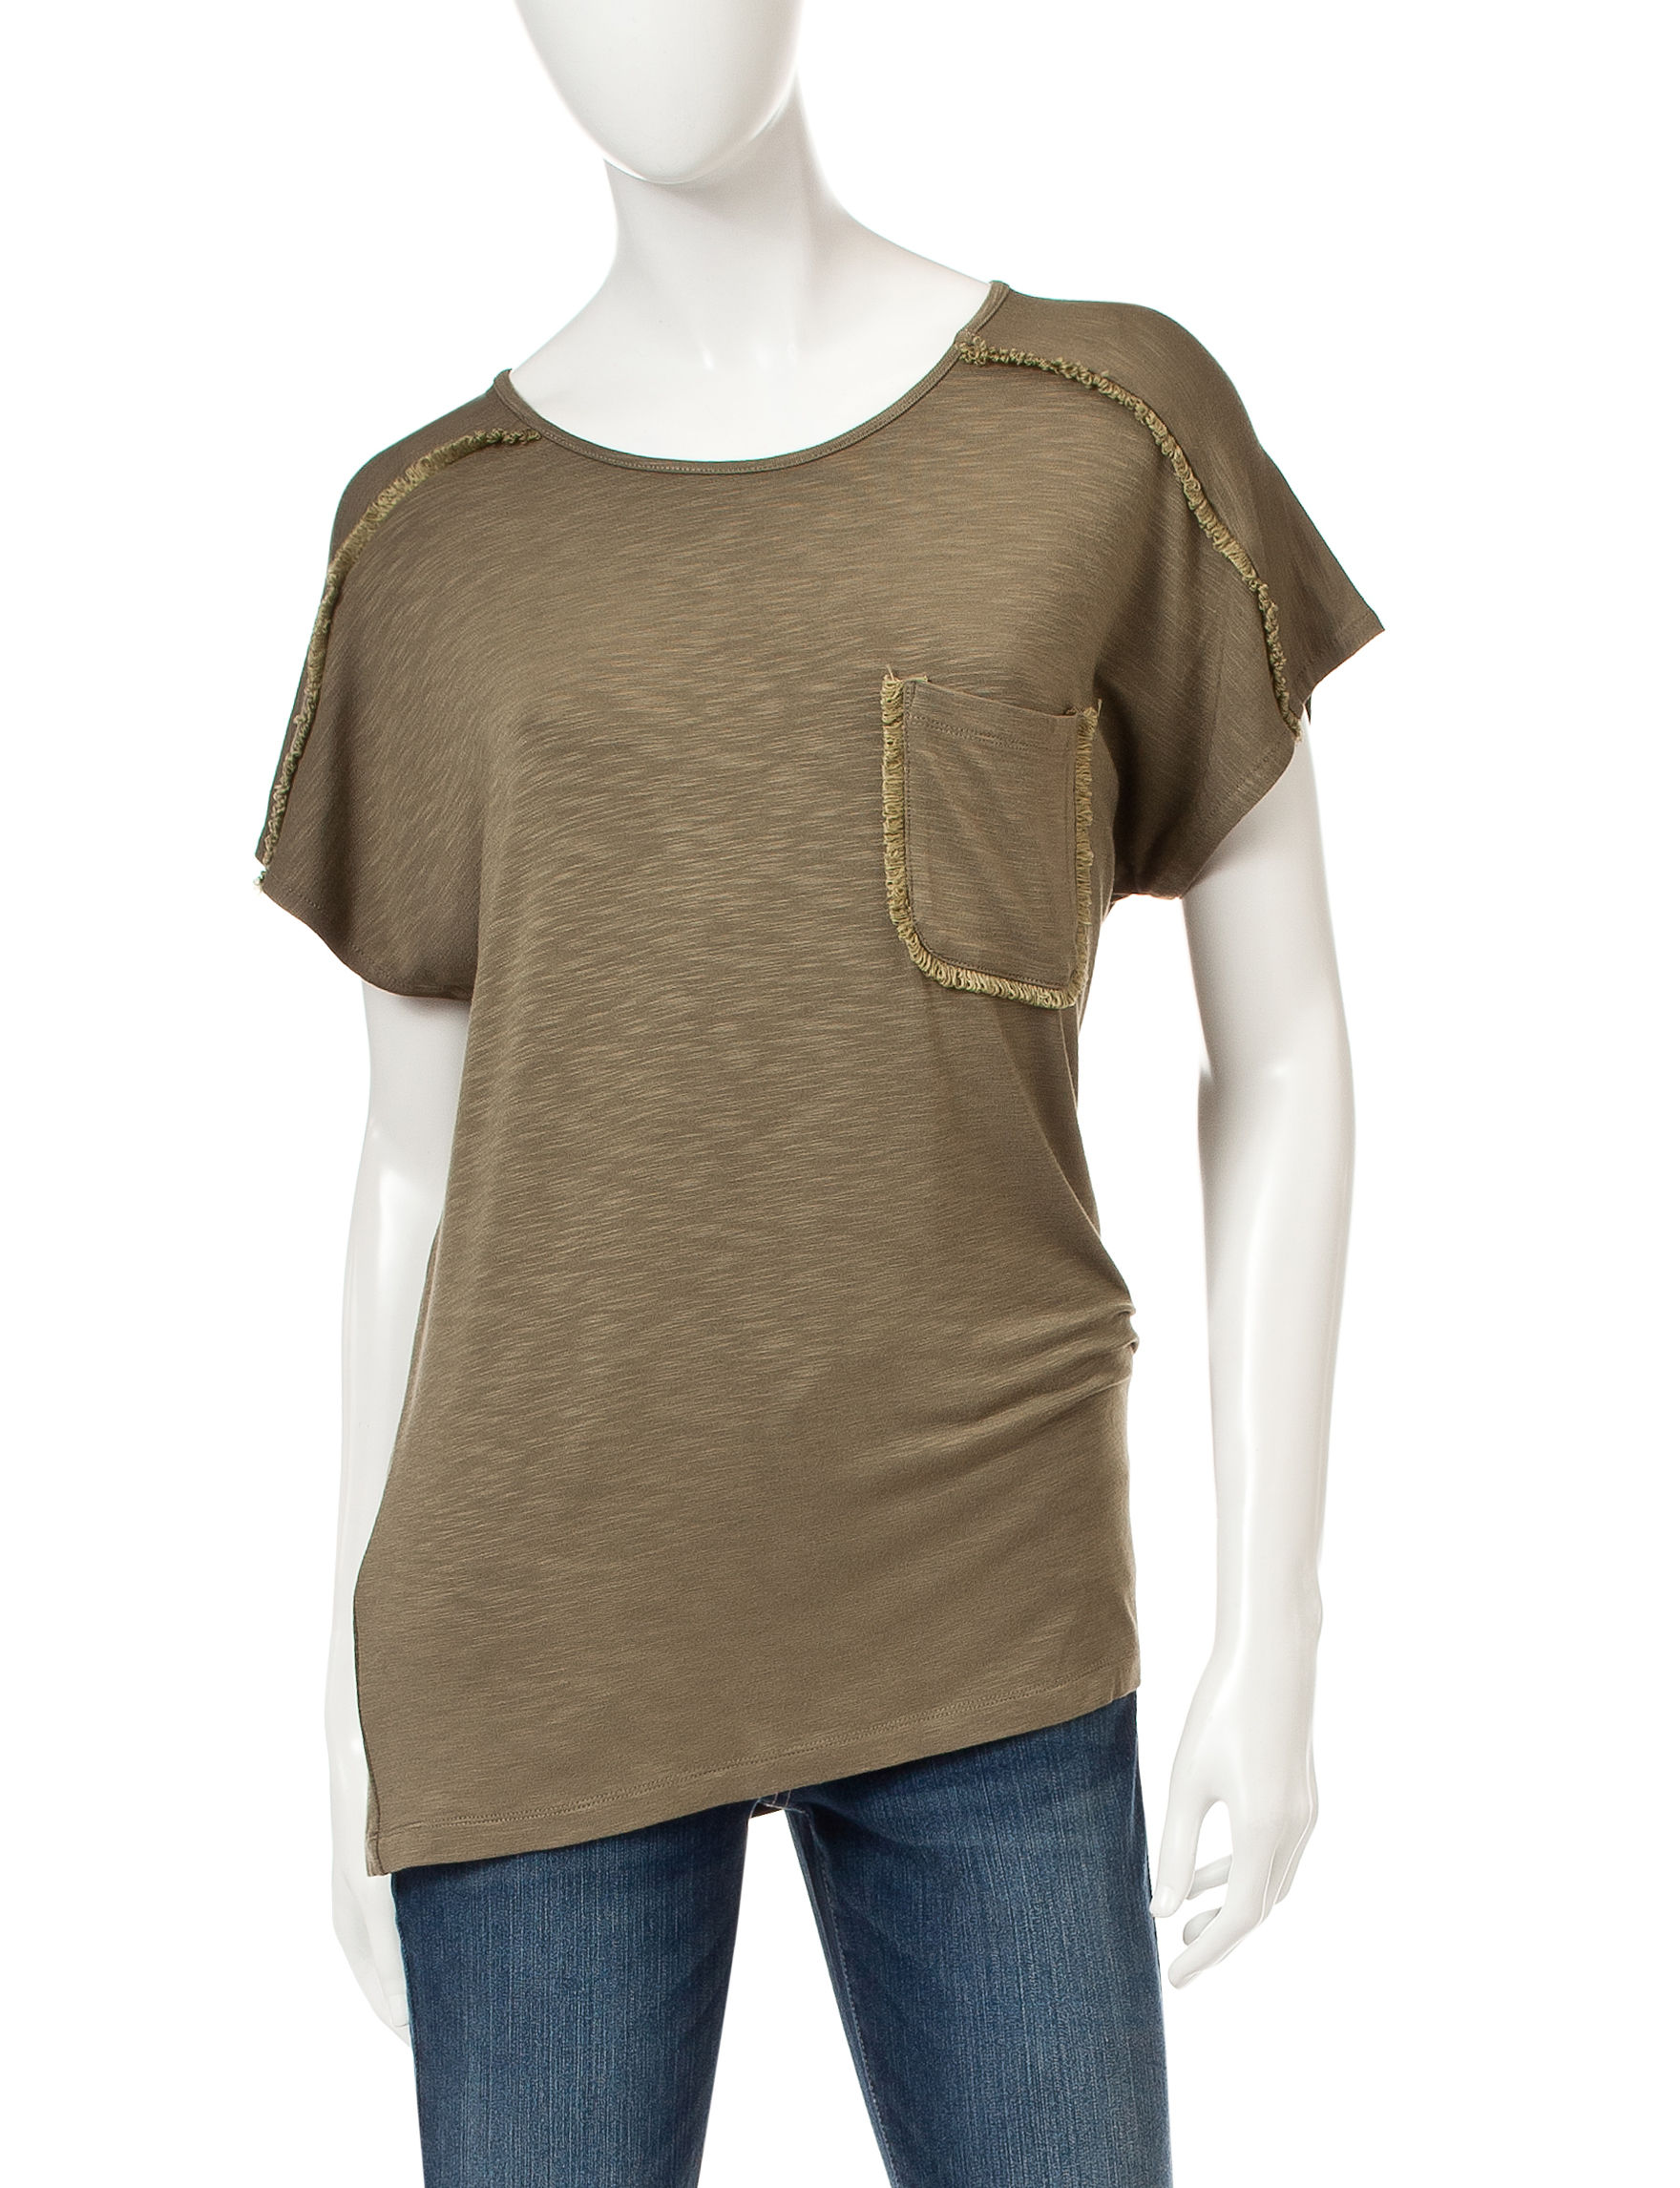 Signature Studio Green Shirts & Blouses